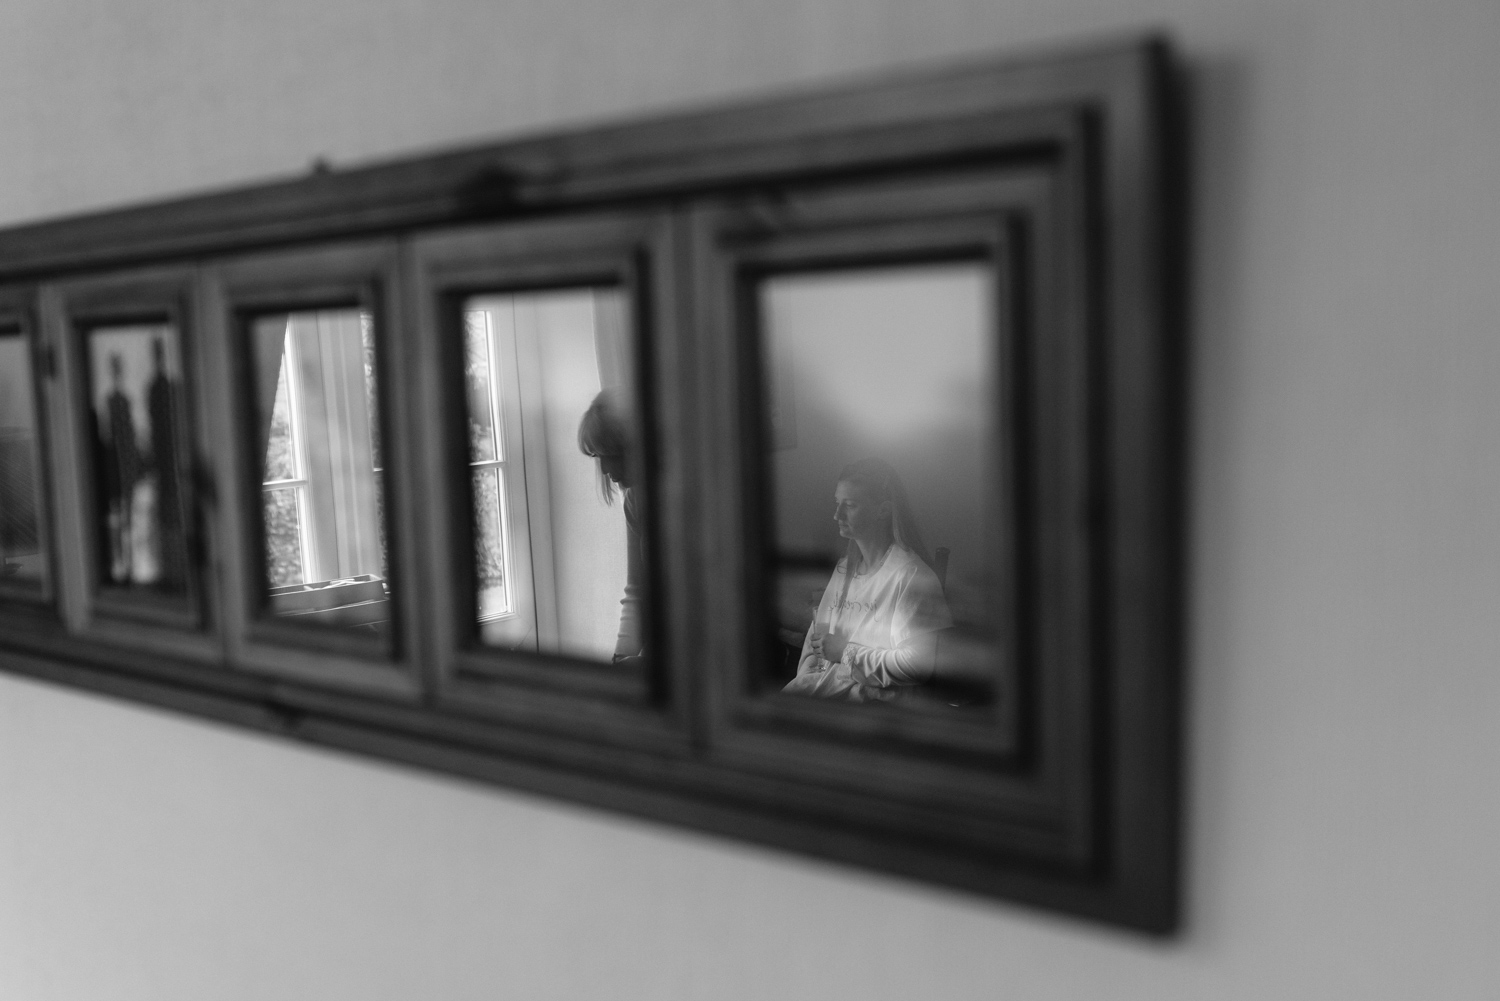 Brides reflection in photograph on wall